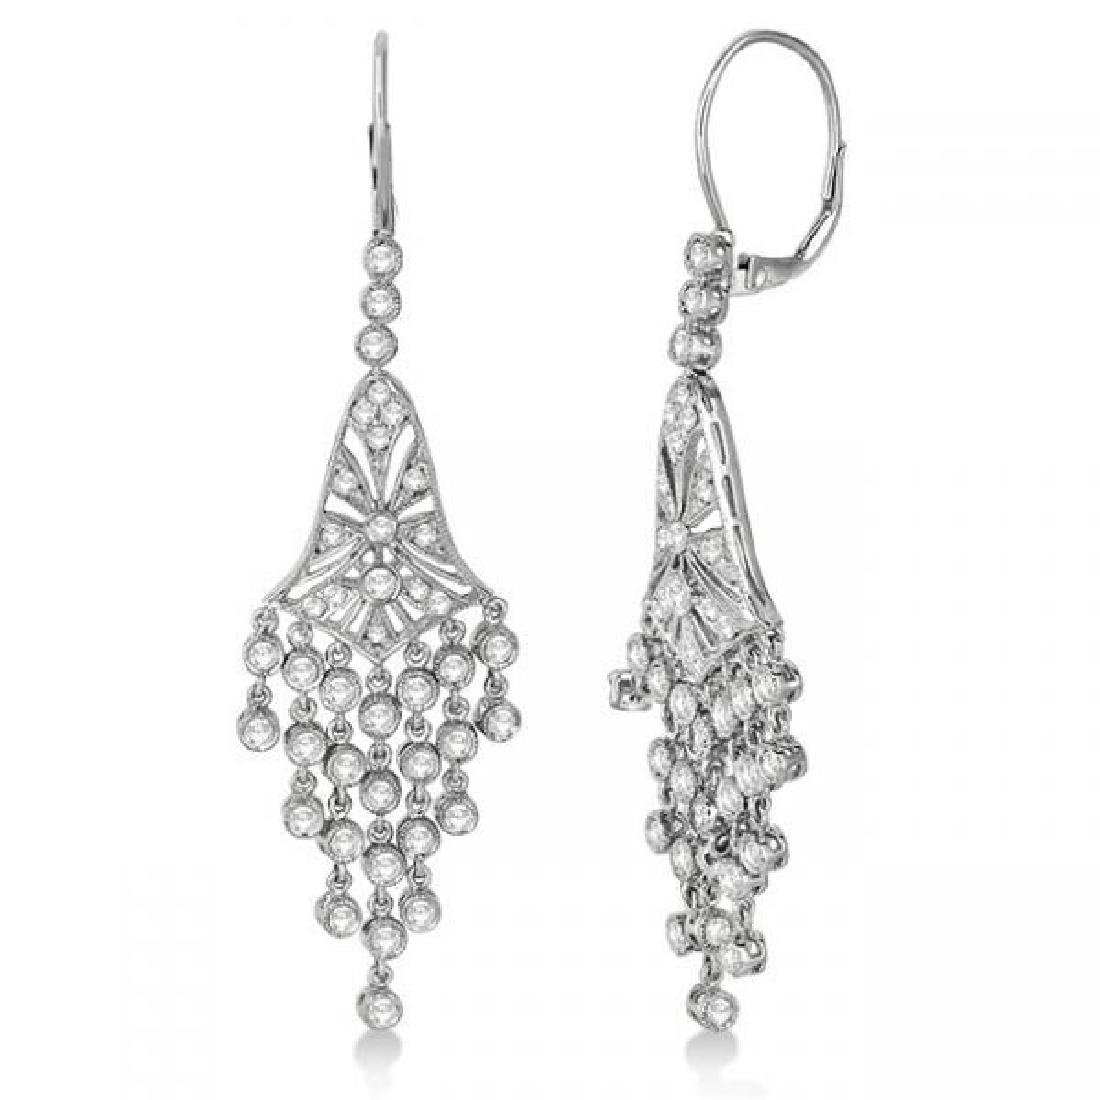 Bezel-Set Dangling Chandelier Diamond Earrings 14K Whit